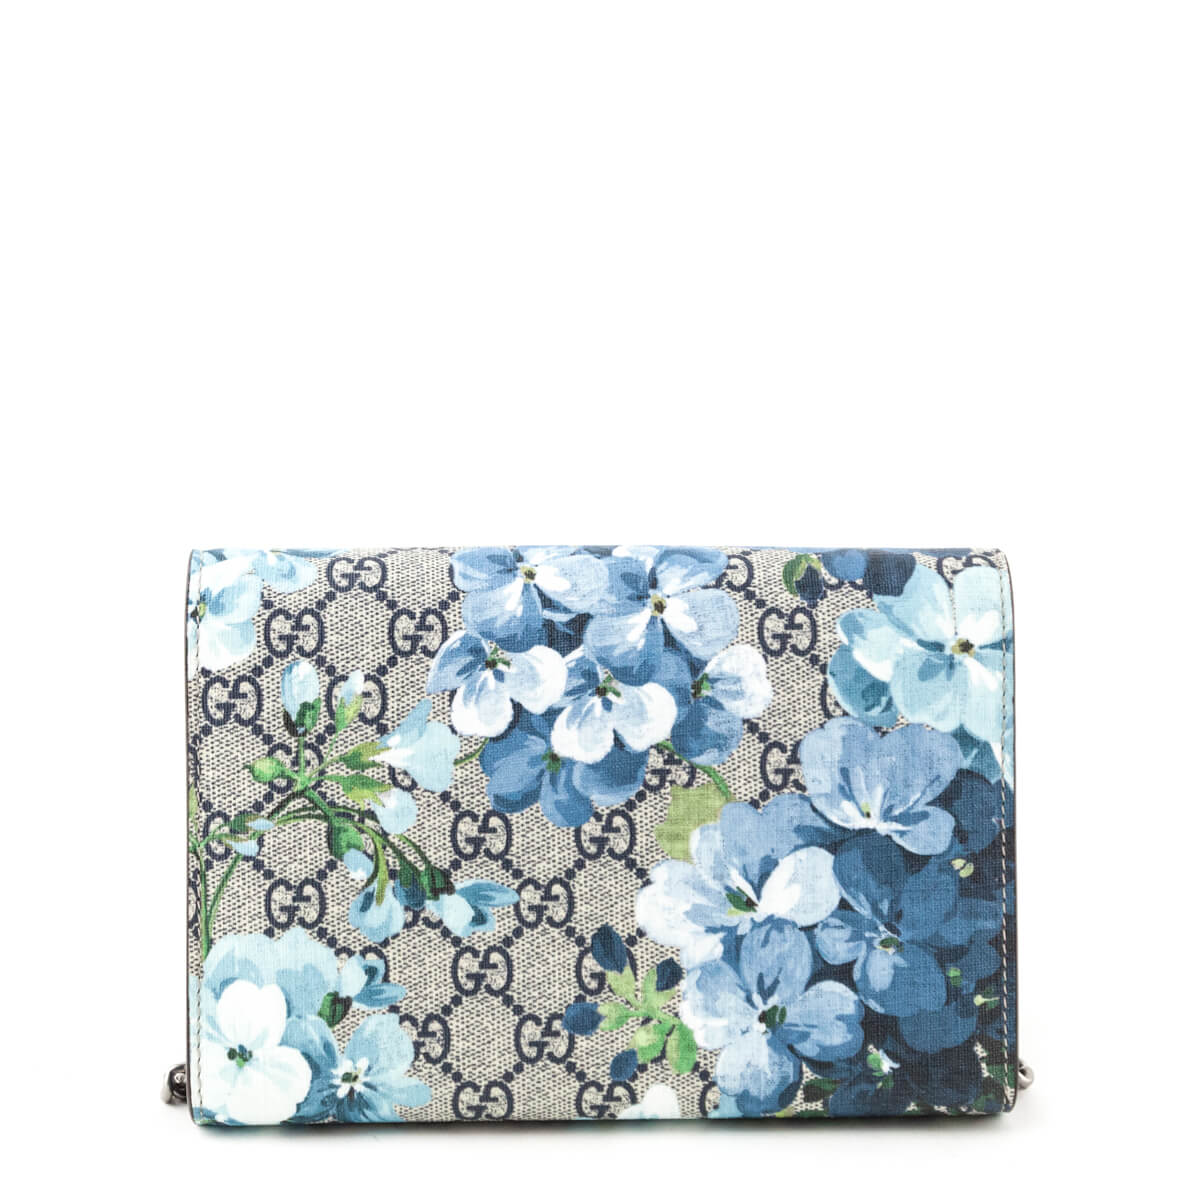 780a3108115897 ... Gucci Blue GG Blooms Dionysus Wallet On Chain - LOVE that BAG -  Preowned Authentic Designer ...